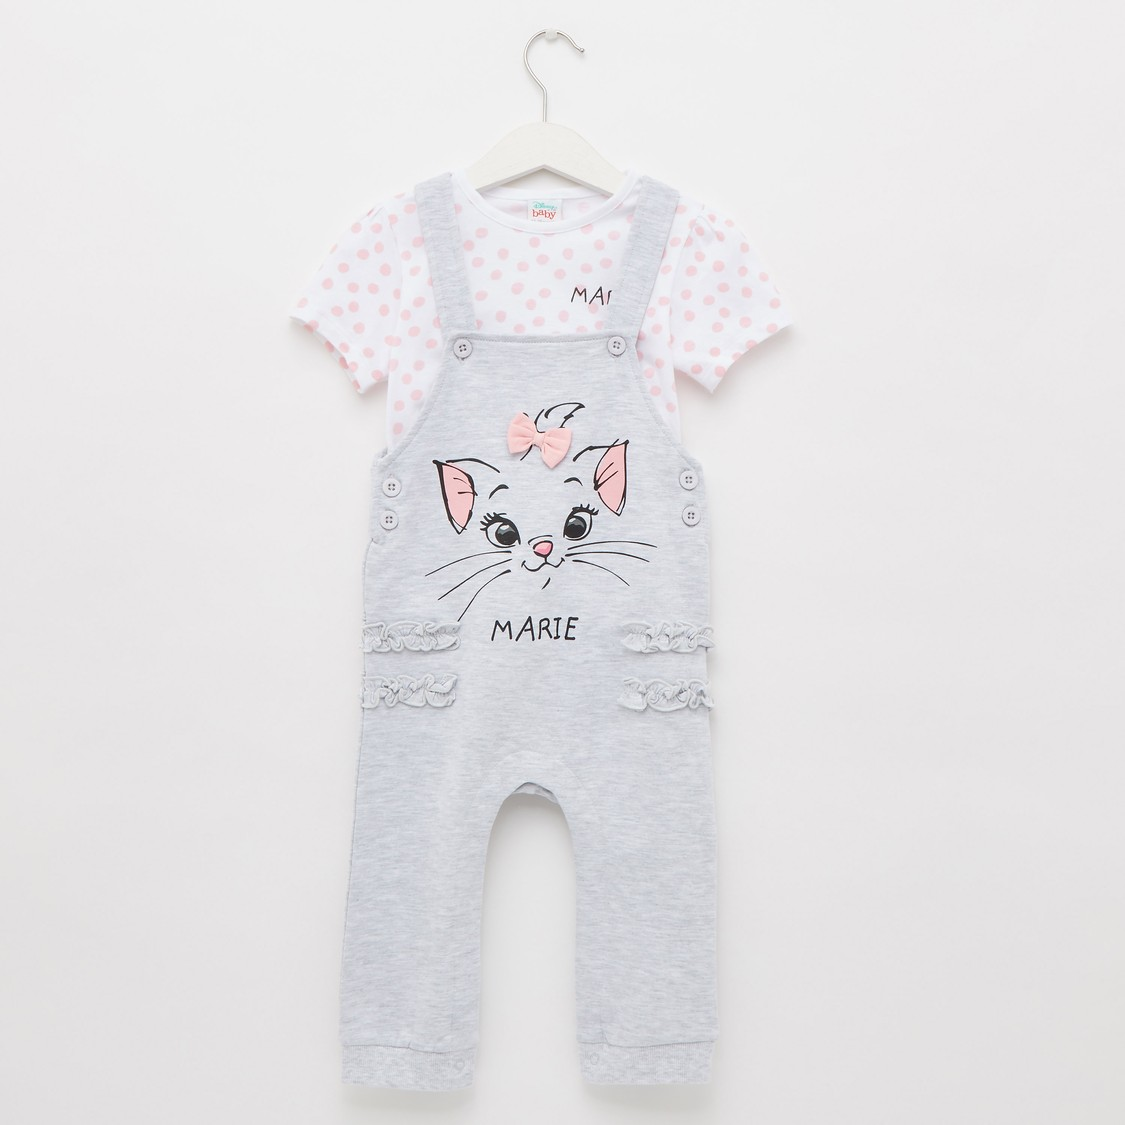 Marie Print Round Neck T-shirt with Dungarees